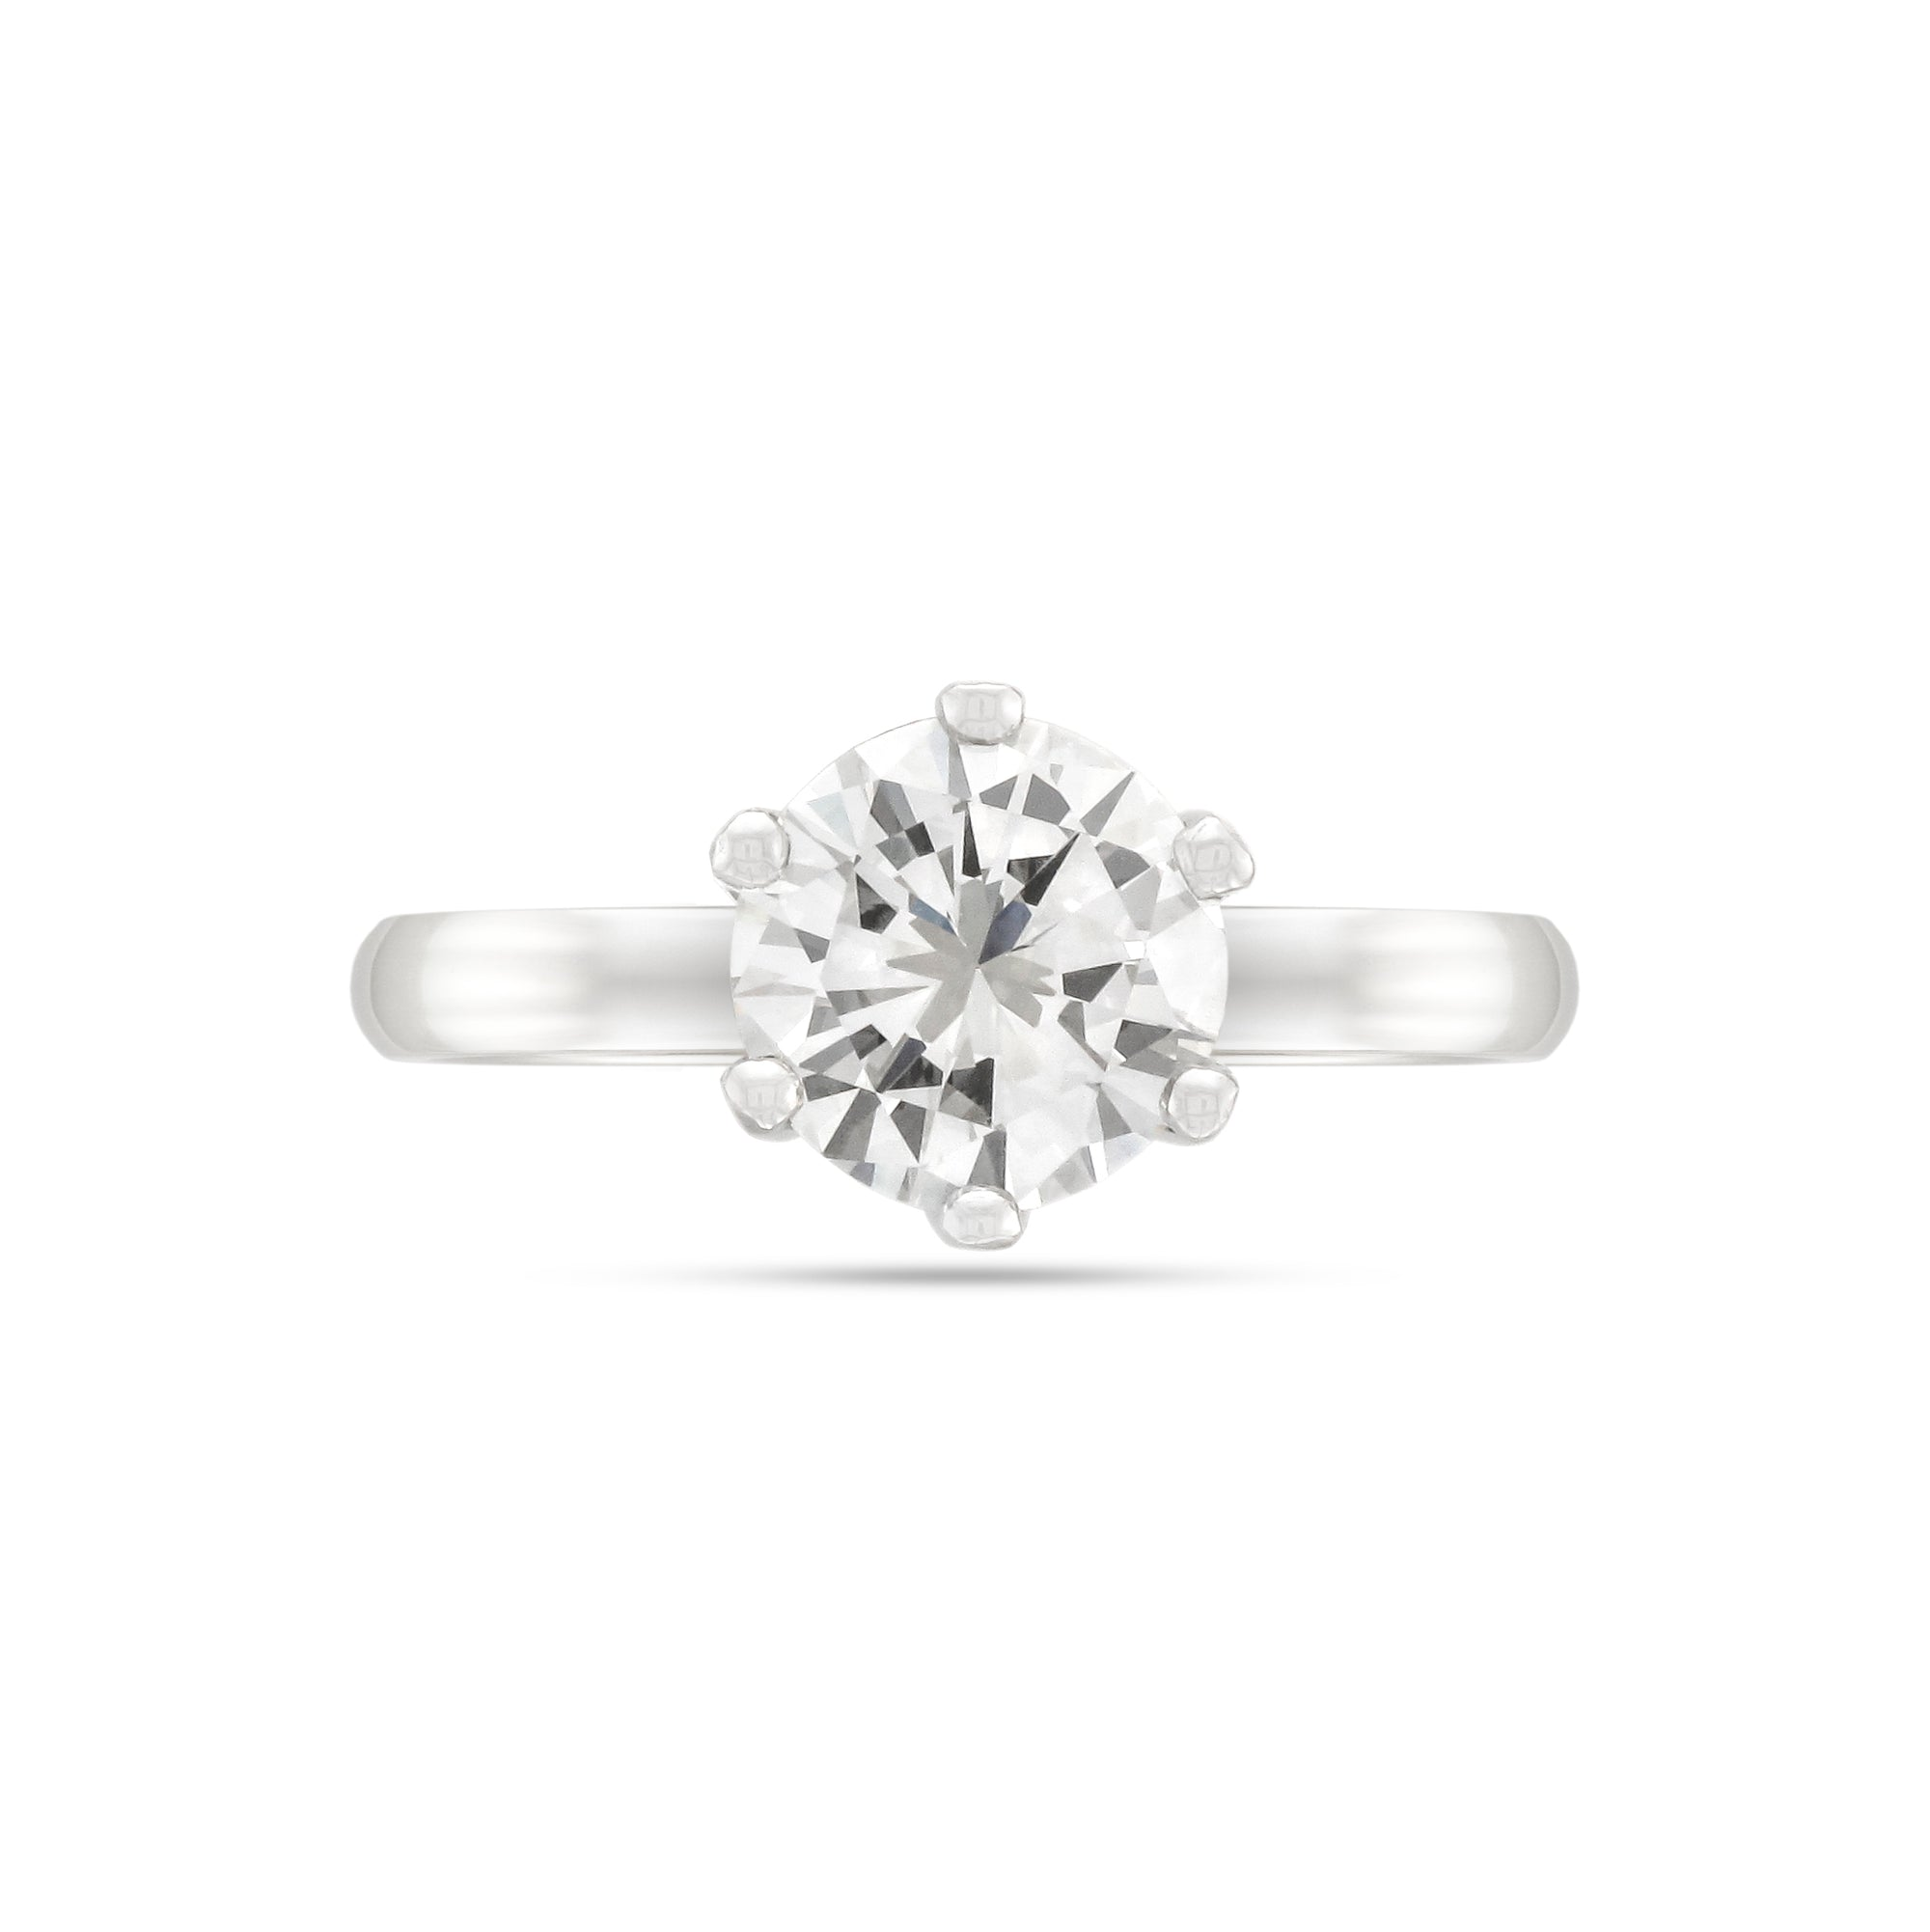 1.68ct Brilliant-Cut Diamond Solitaire Engagement Ring